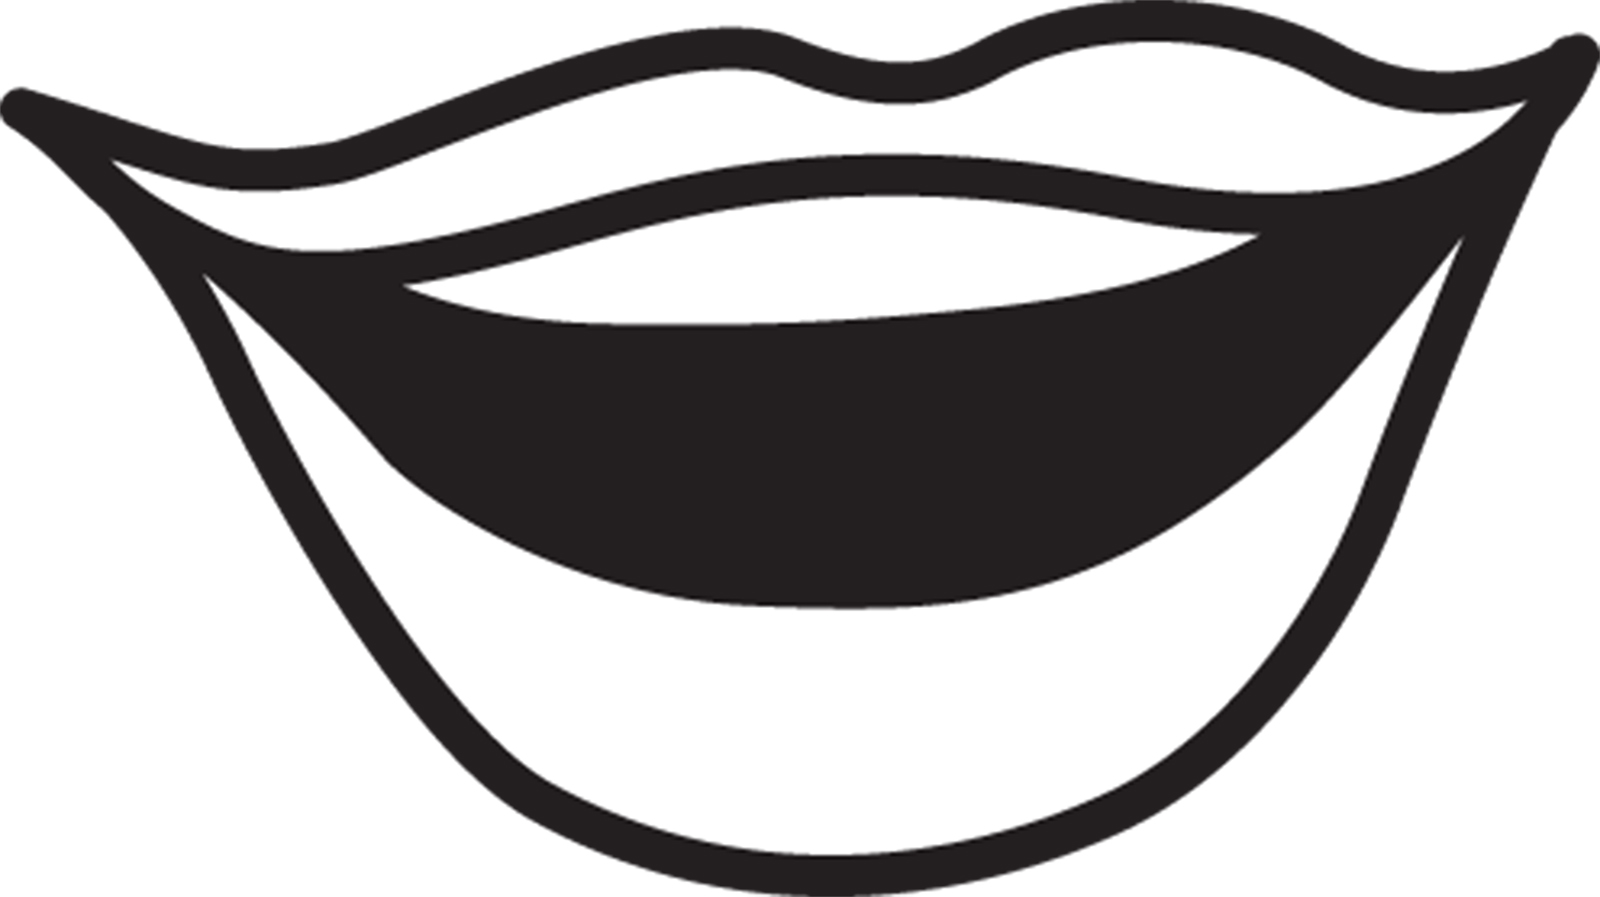 Lips Coloring Page - Free Body Coloring Pages : ColoringPages101.com | 897x1600